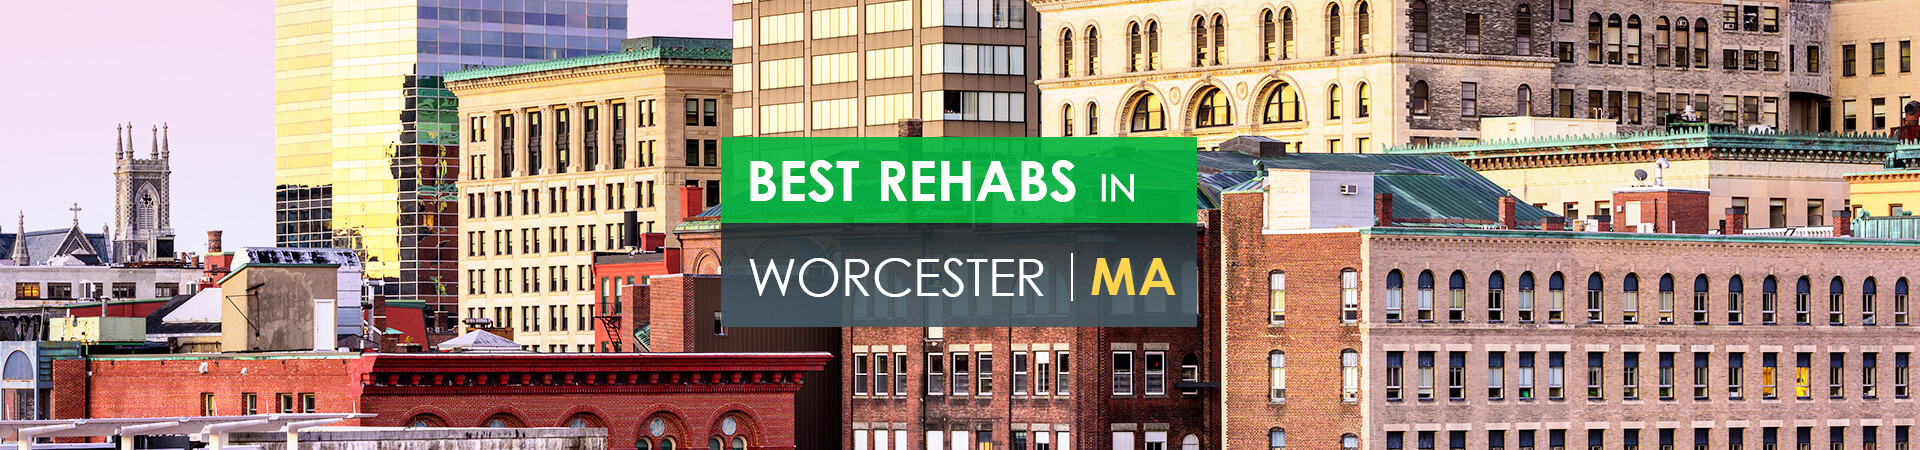 Best rehabs in Worcester, MA